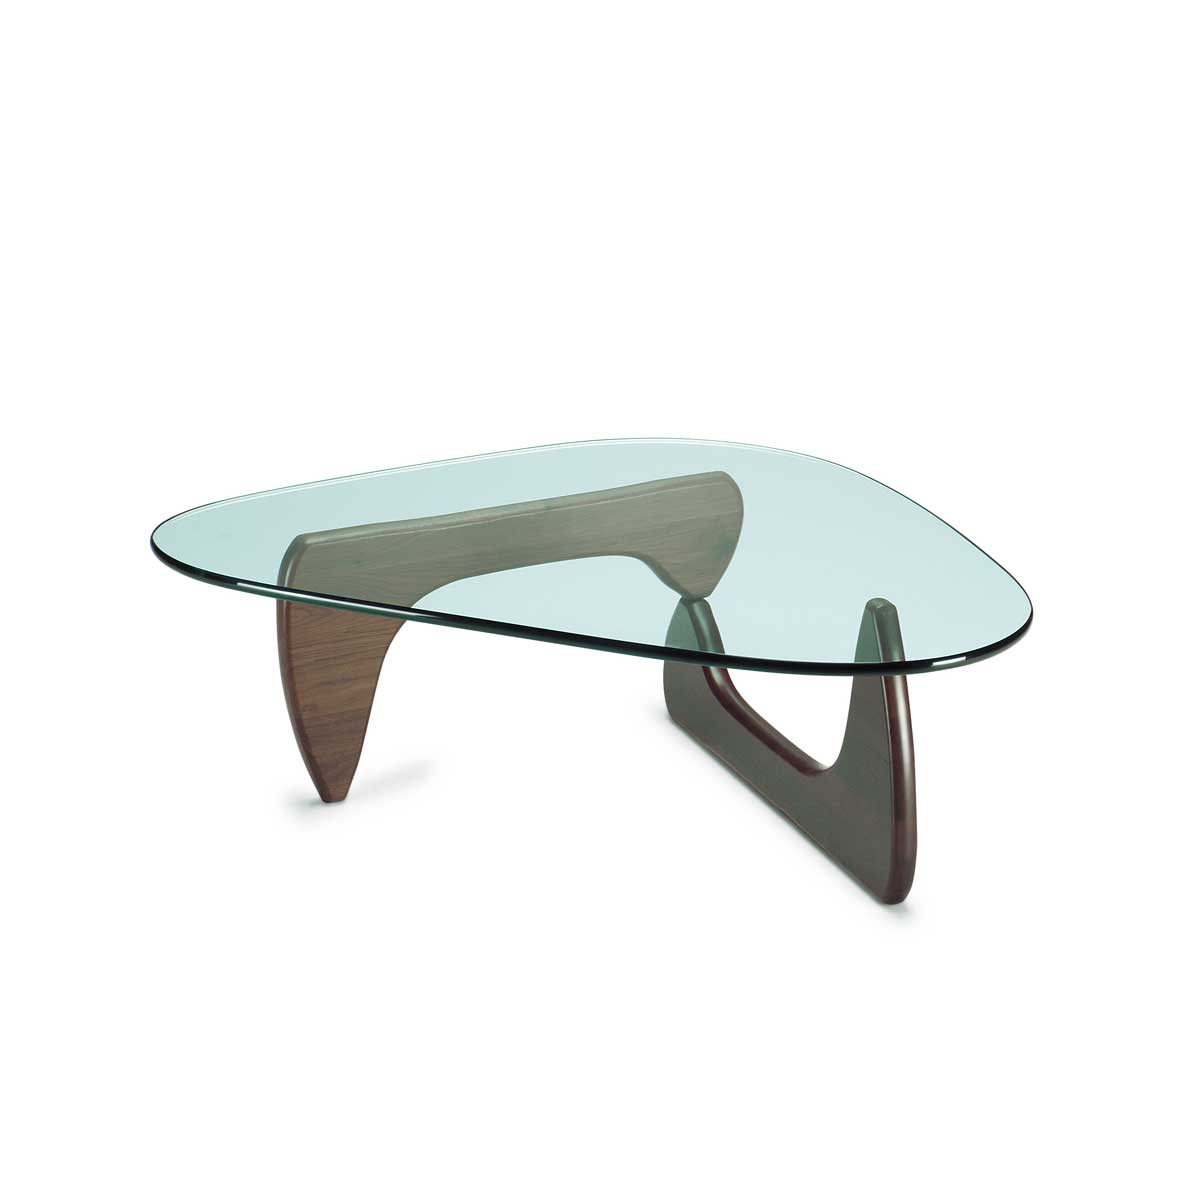 64903 Coffee Table master